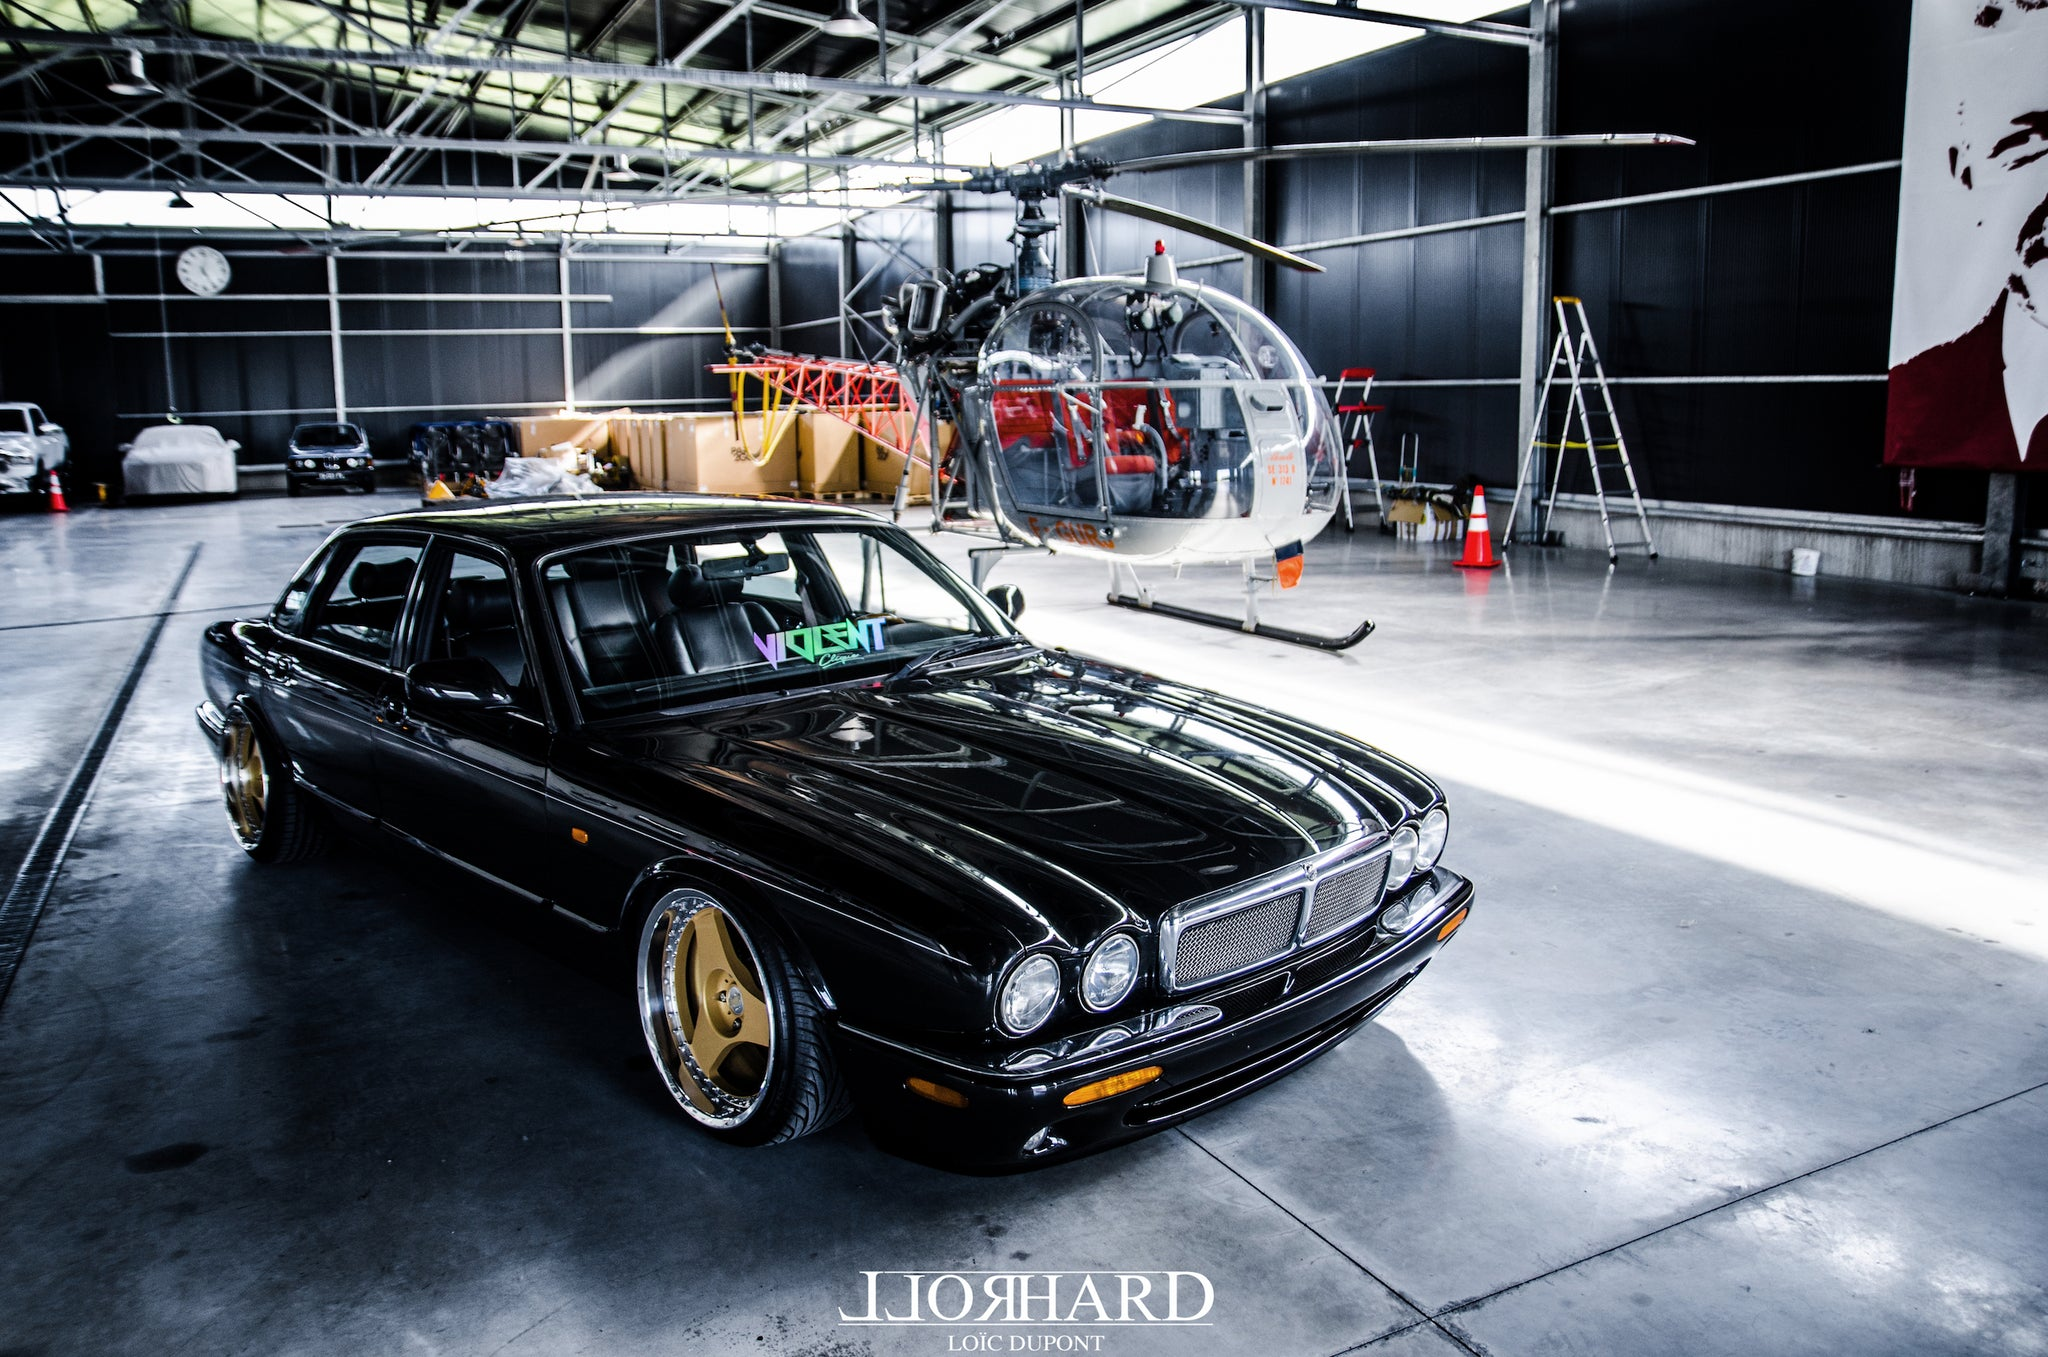 Jaguar XJ 3.2 1997 RollHard Feature, Work Voggard 18x10.5 airride, modified jag, modified car, low, euro, three-piece, three-spoke wheels, 3 spoke, slam sanctuary, ilb drivers club, french modified car